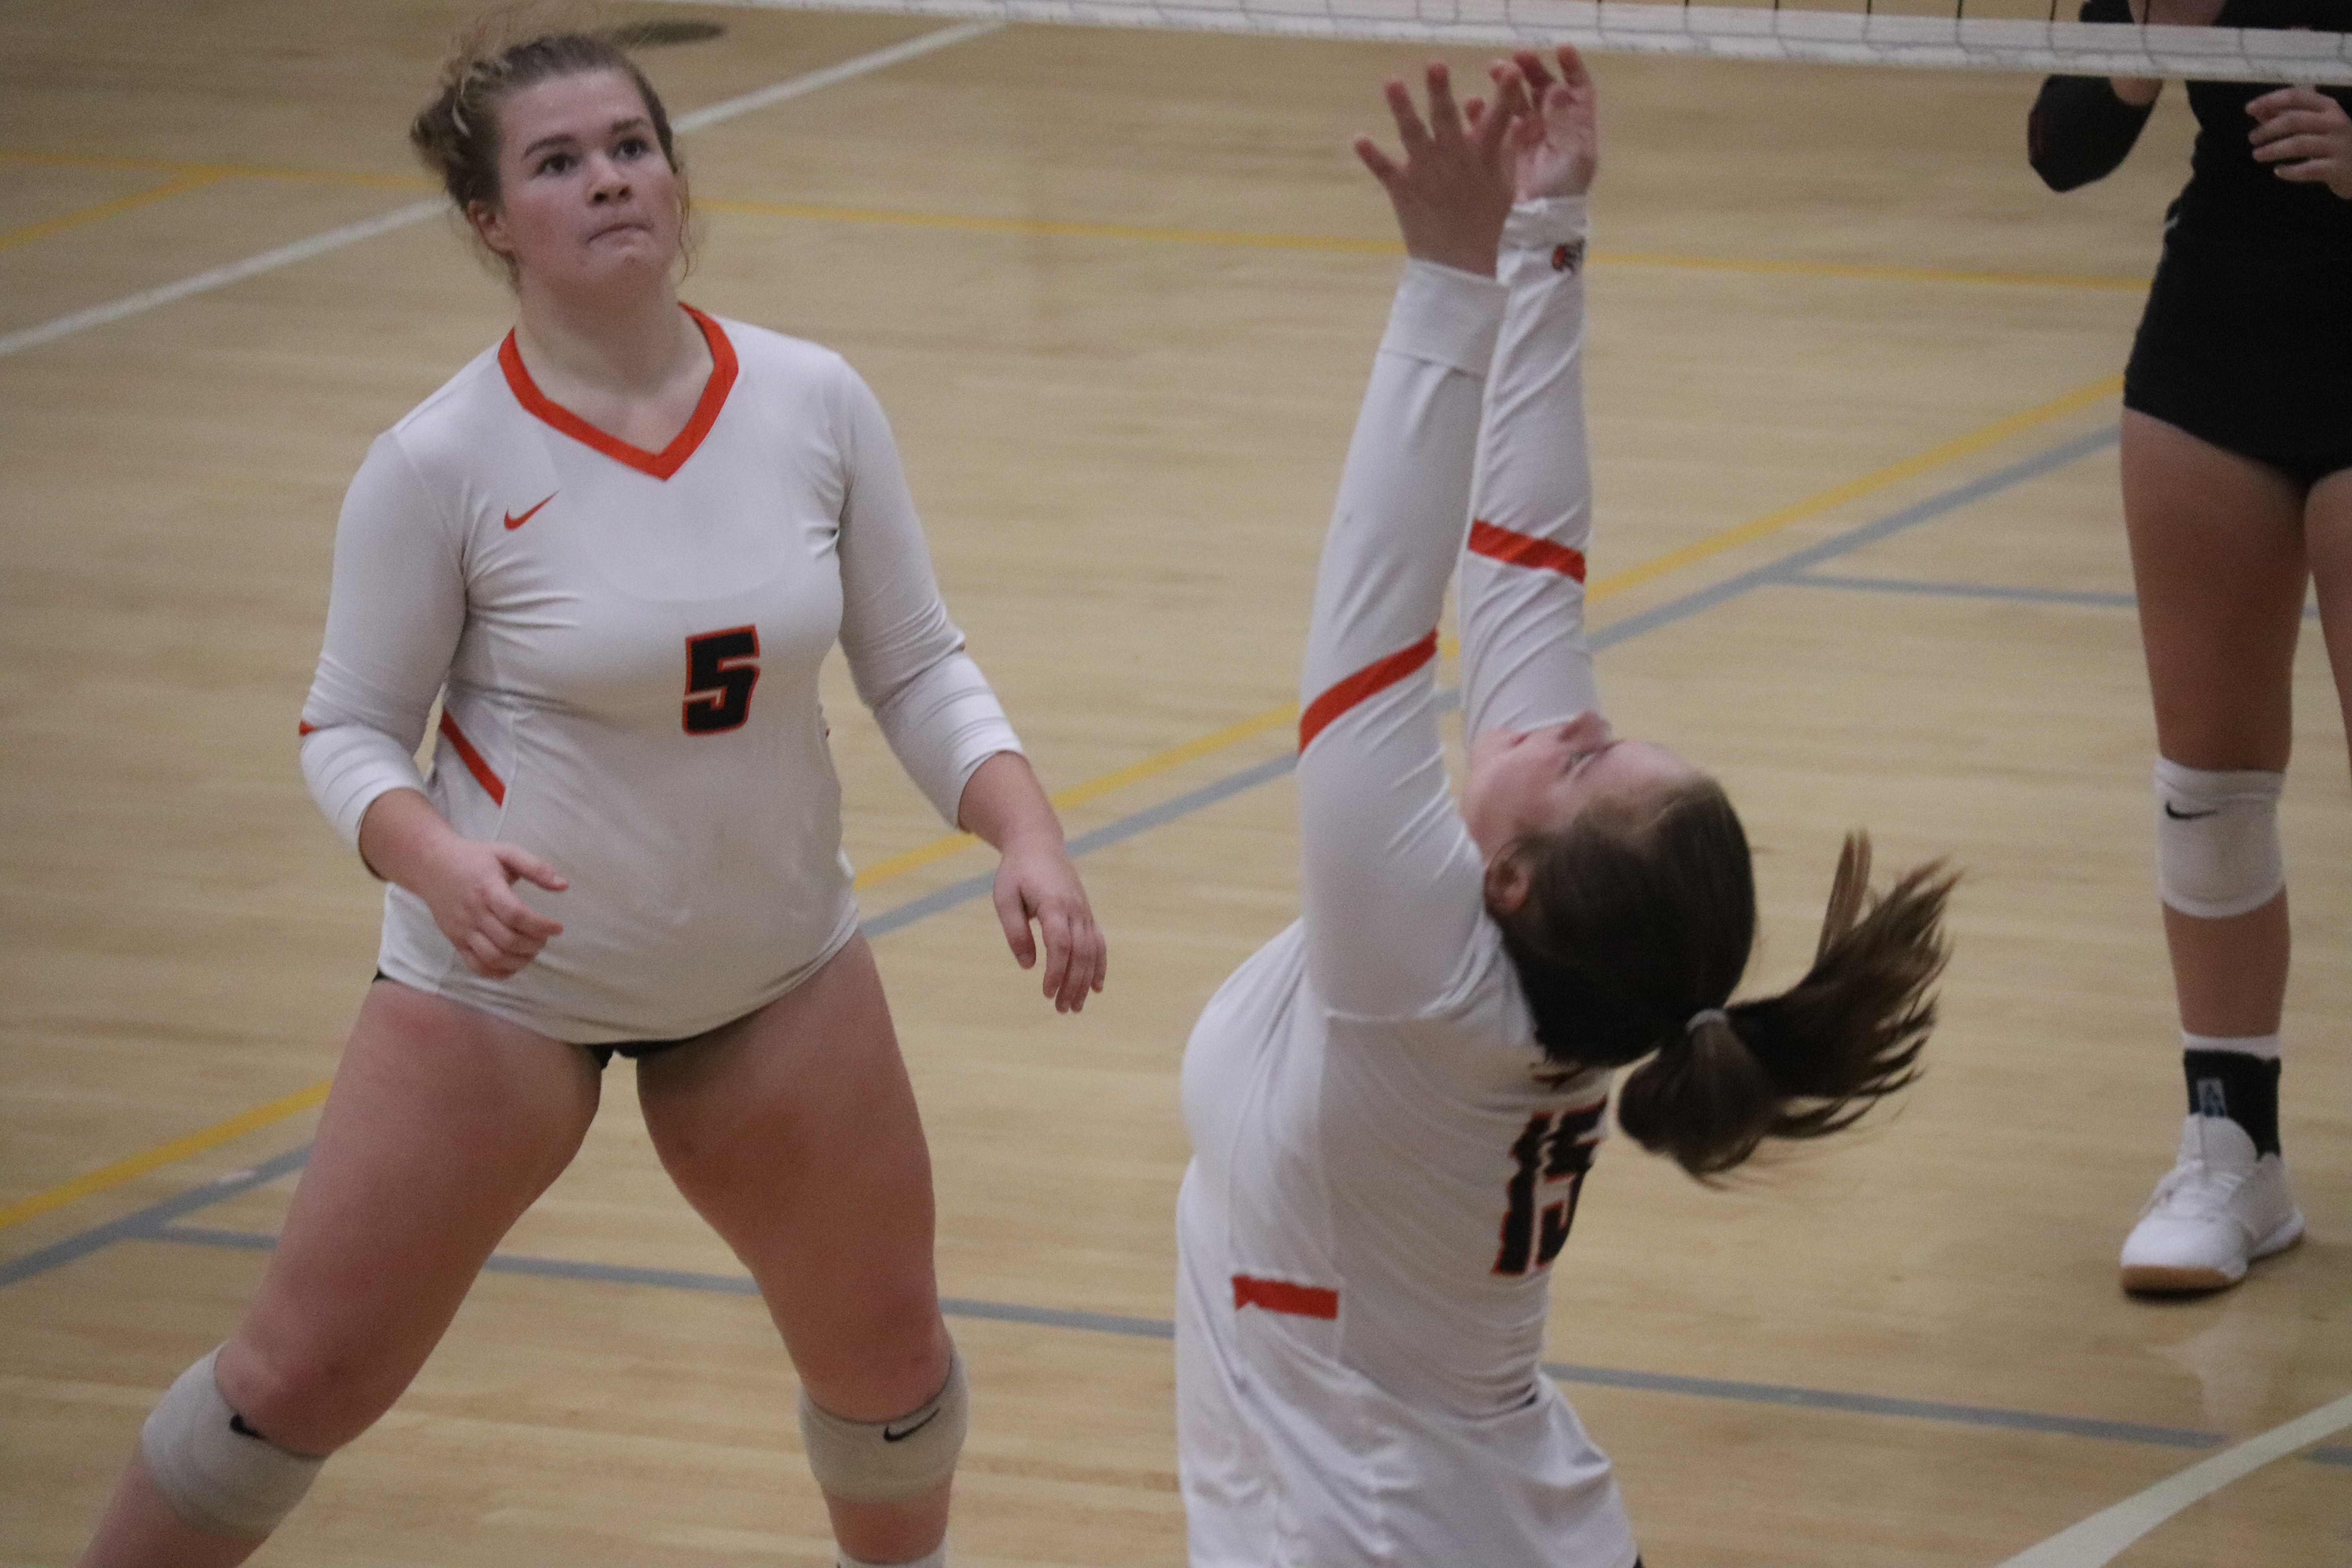 Carly Stevenson named to All-Northeast Iowa Conference Volleyball Second Team